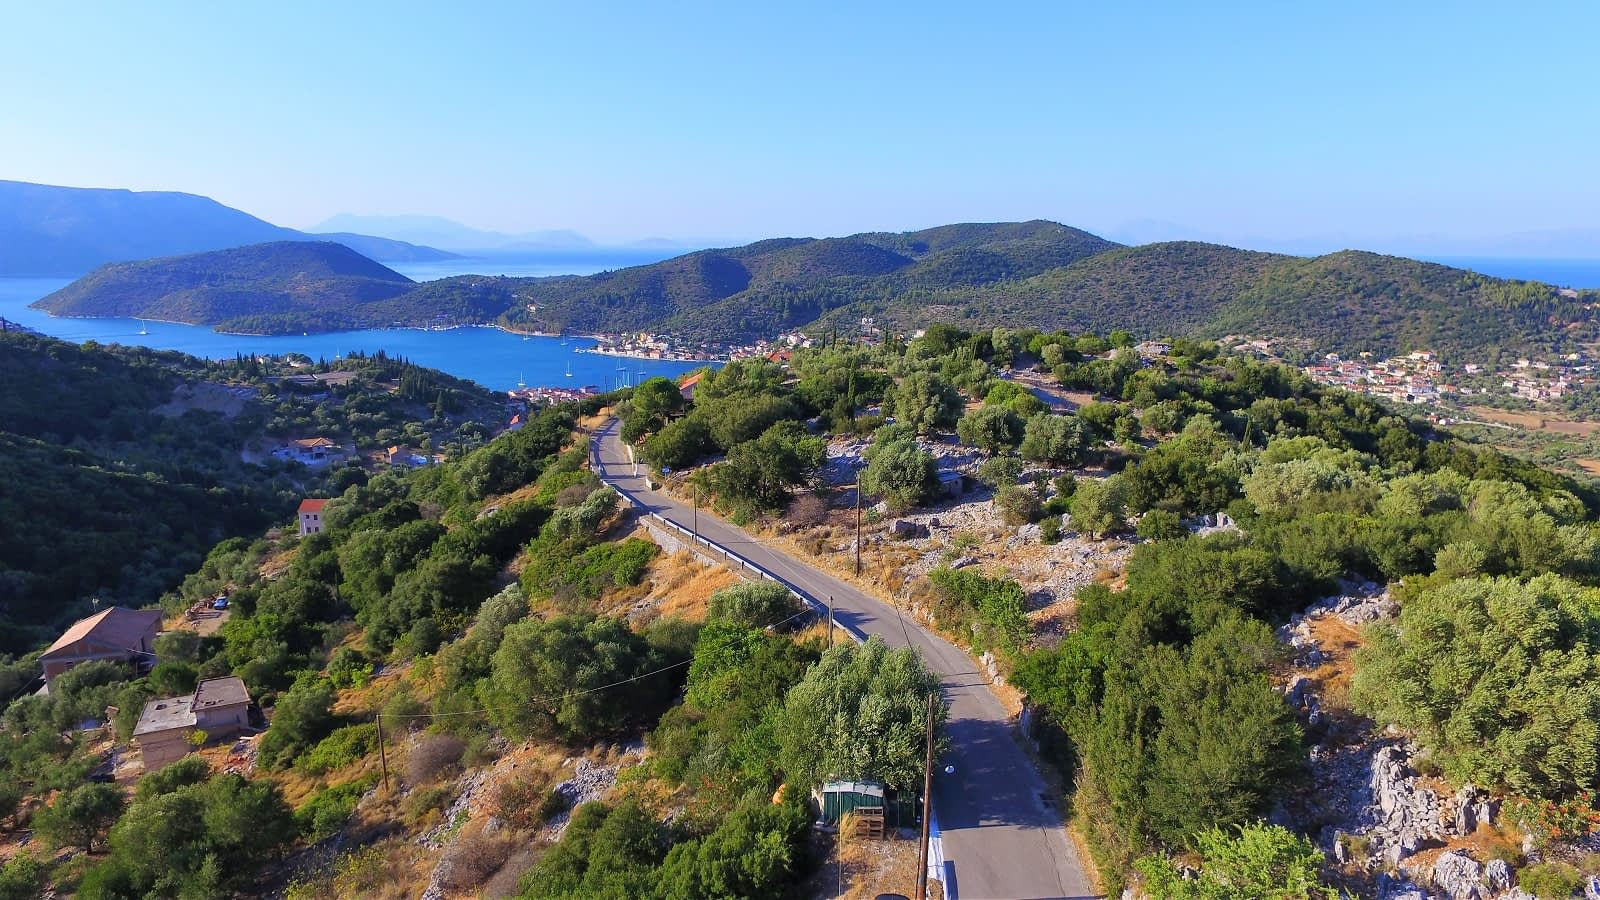 Aerial landscape and view of property for sale in Ithaca Greece Perachori